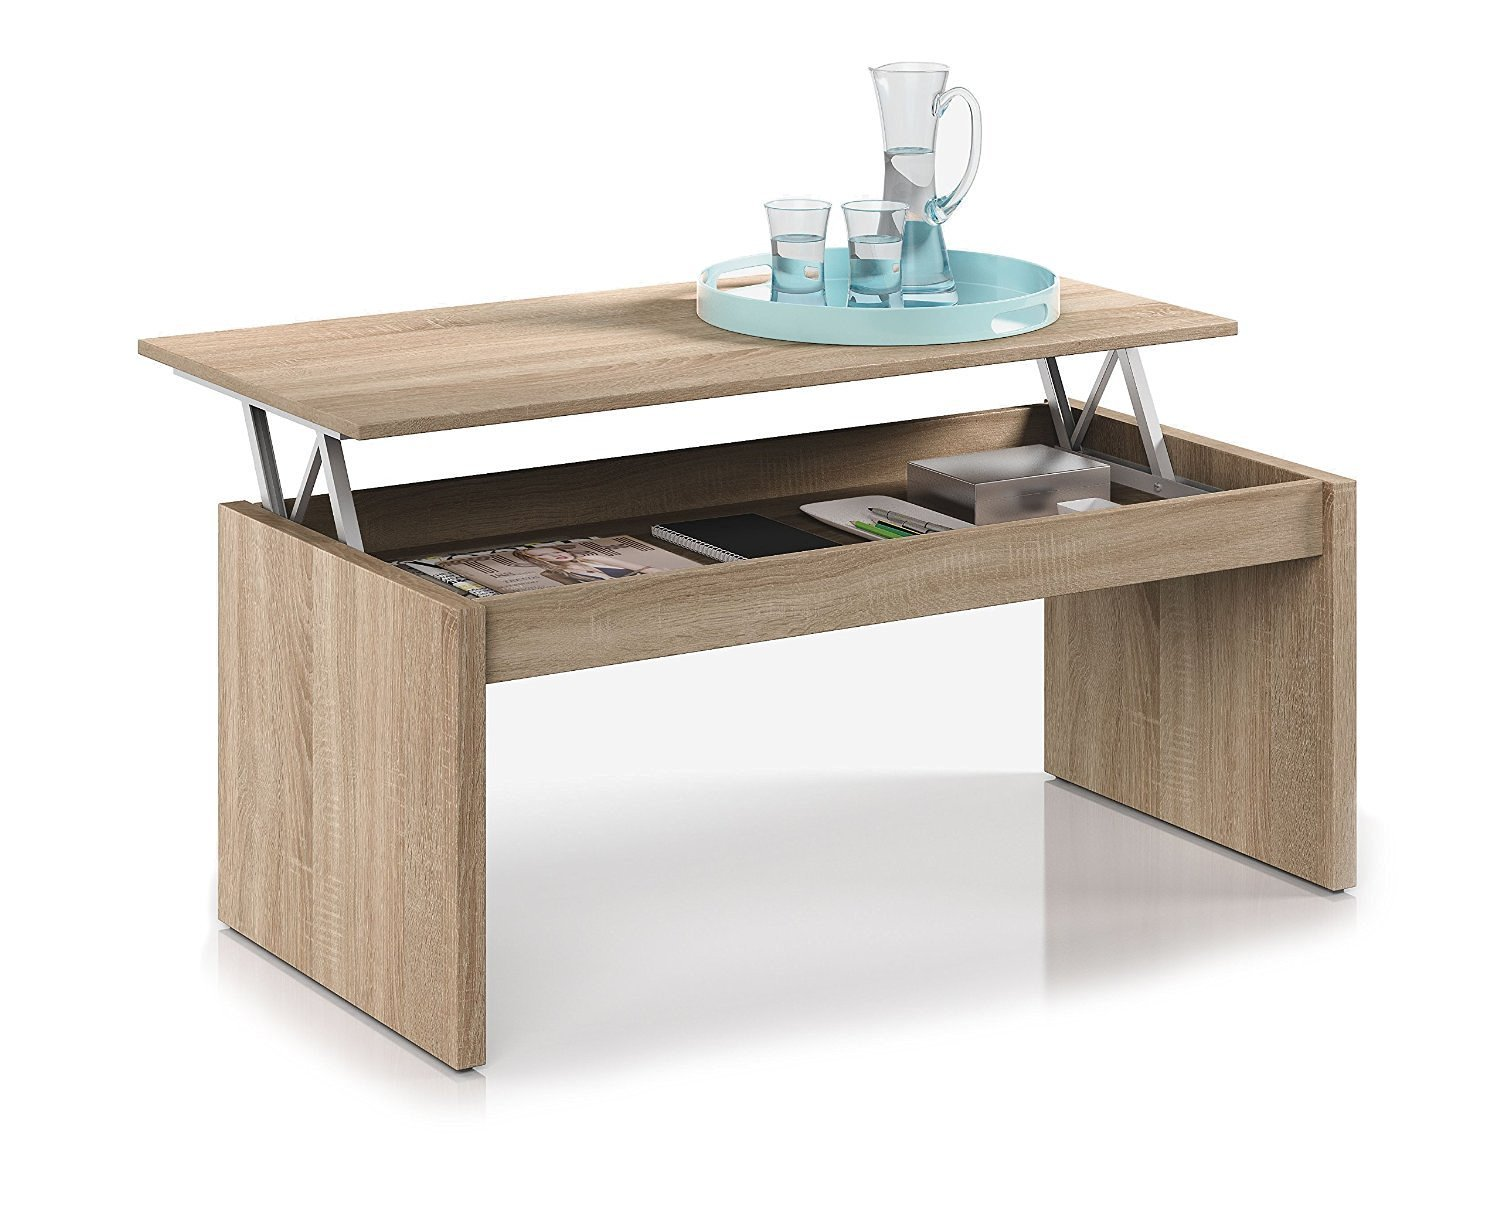 table basse kilo beau table basse habitat kilo habitat. Black Bedroom Furniture Sets. Home Design Ideas